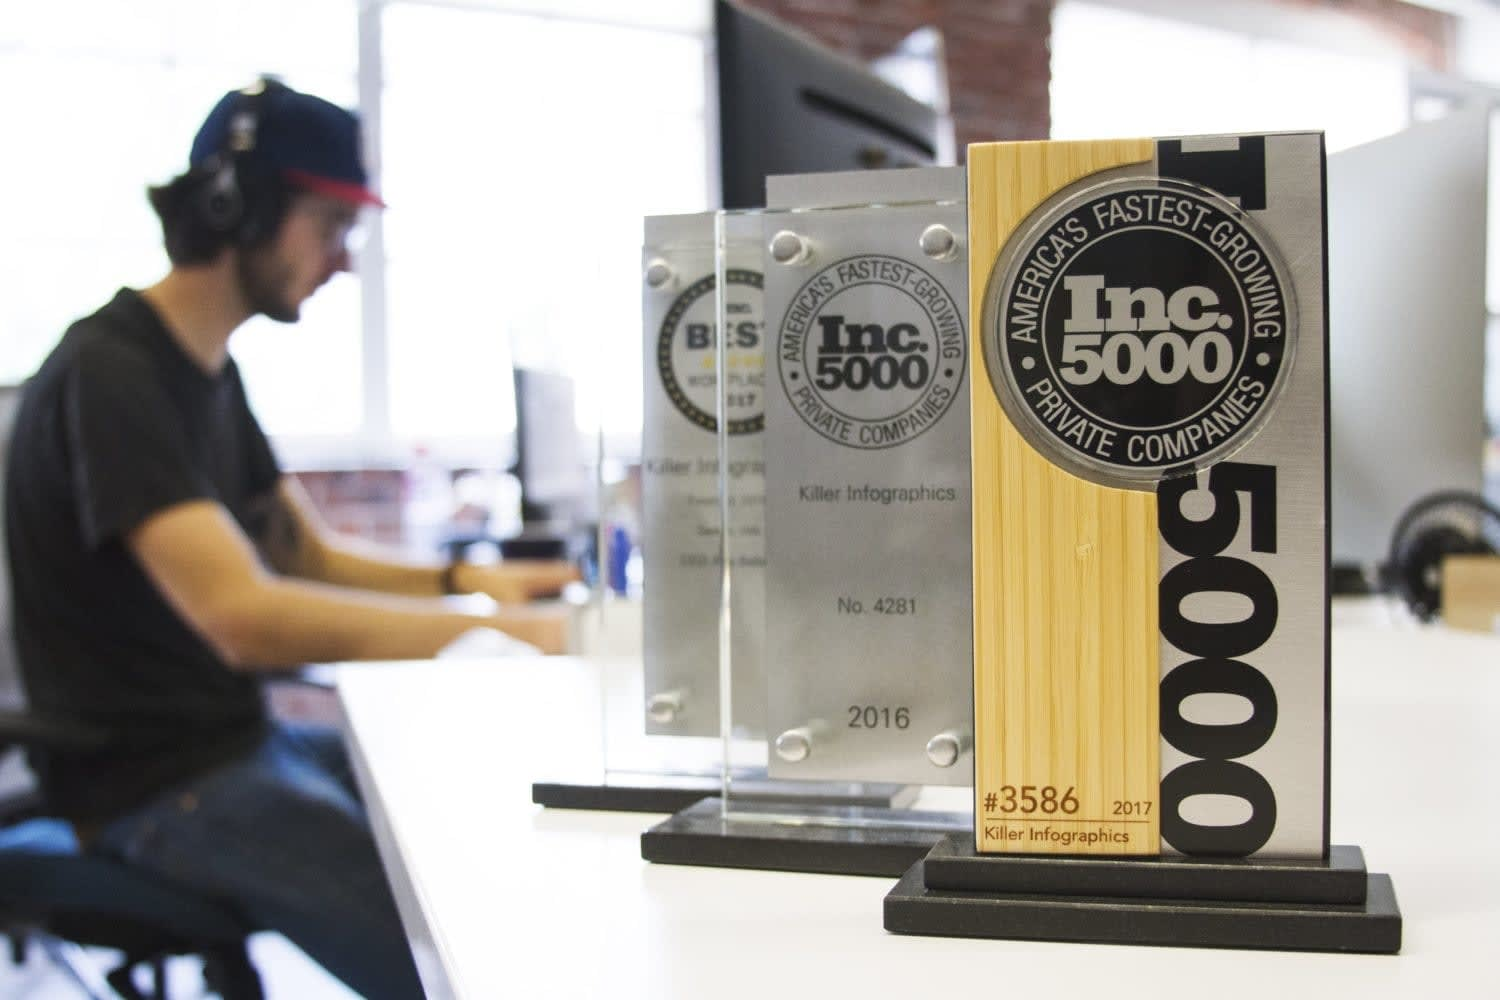 Inc 5000 awards Killer Infographics